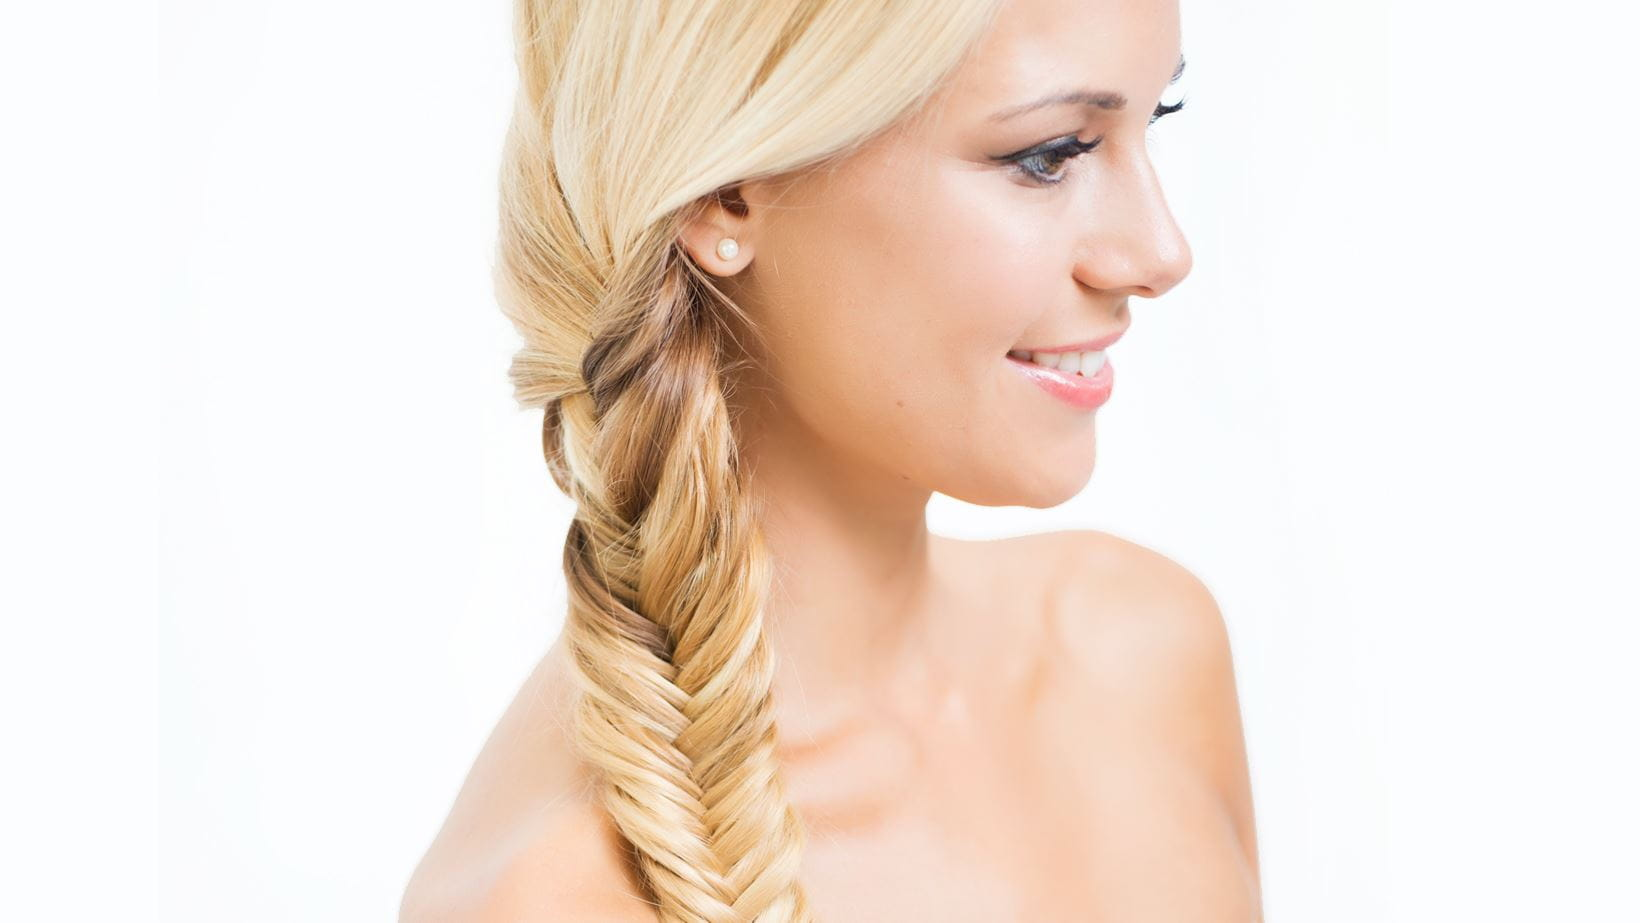 0131_HC_the_fishtail_braid_the_on_trend_hairstyle_intro_1